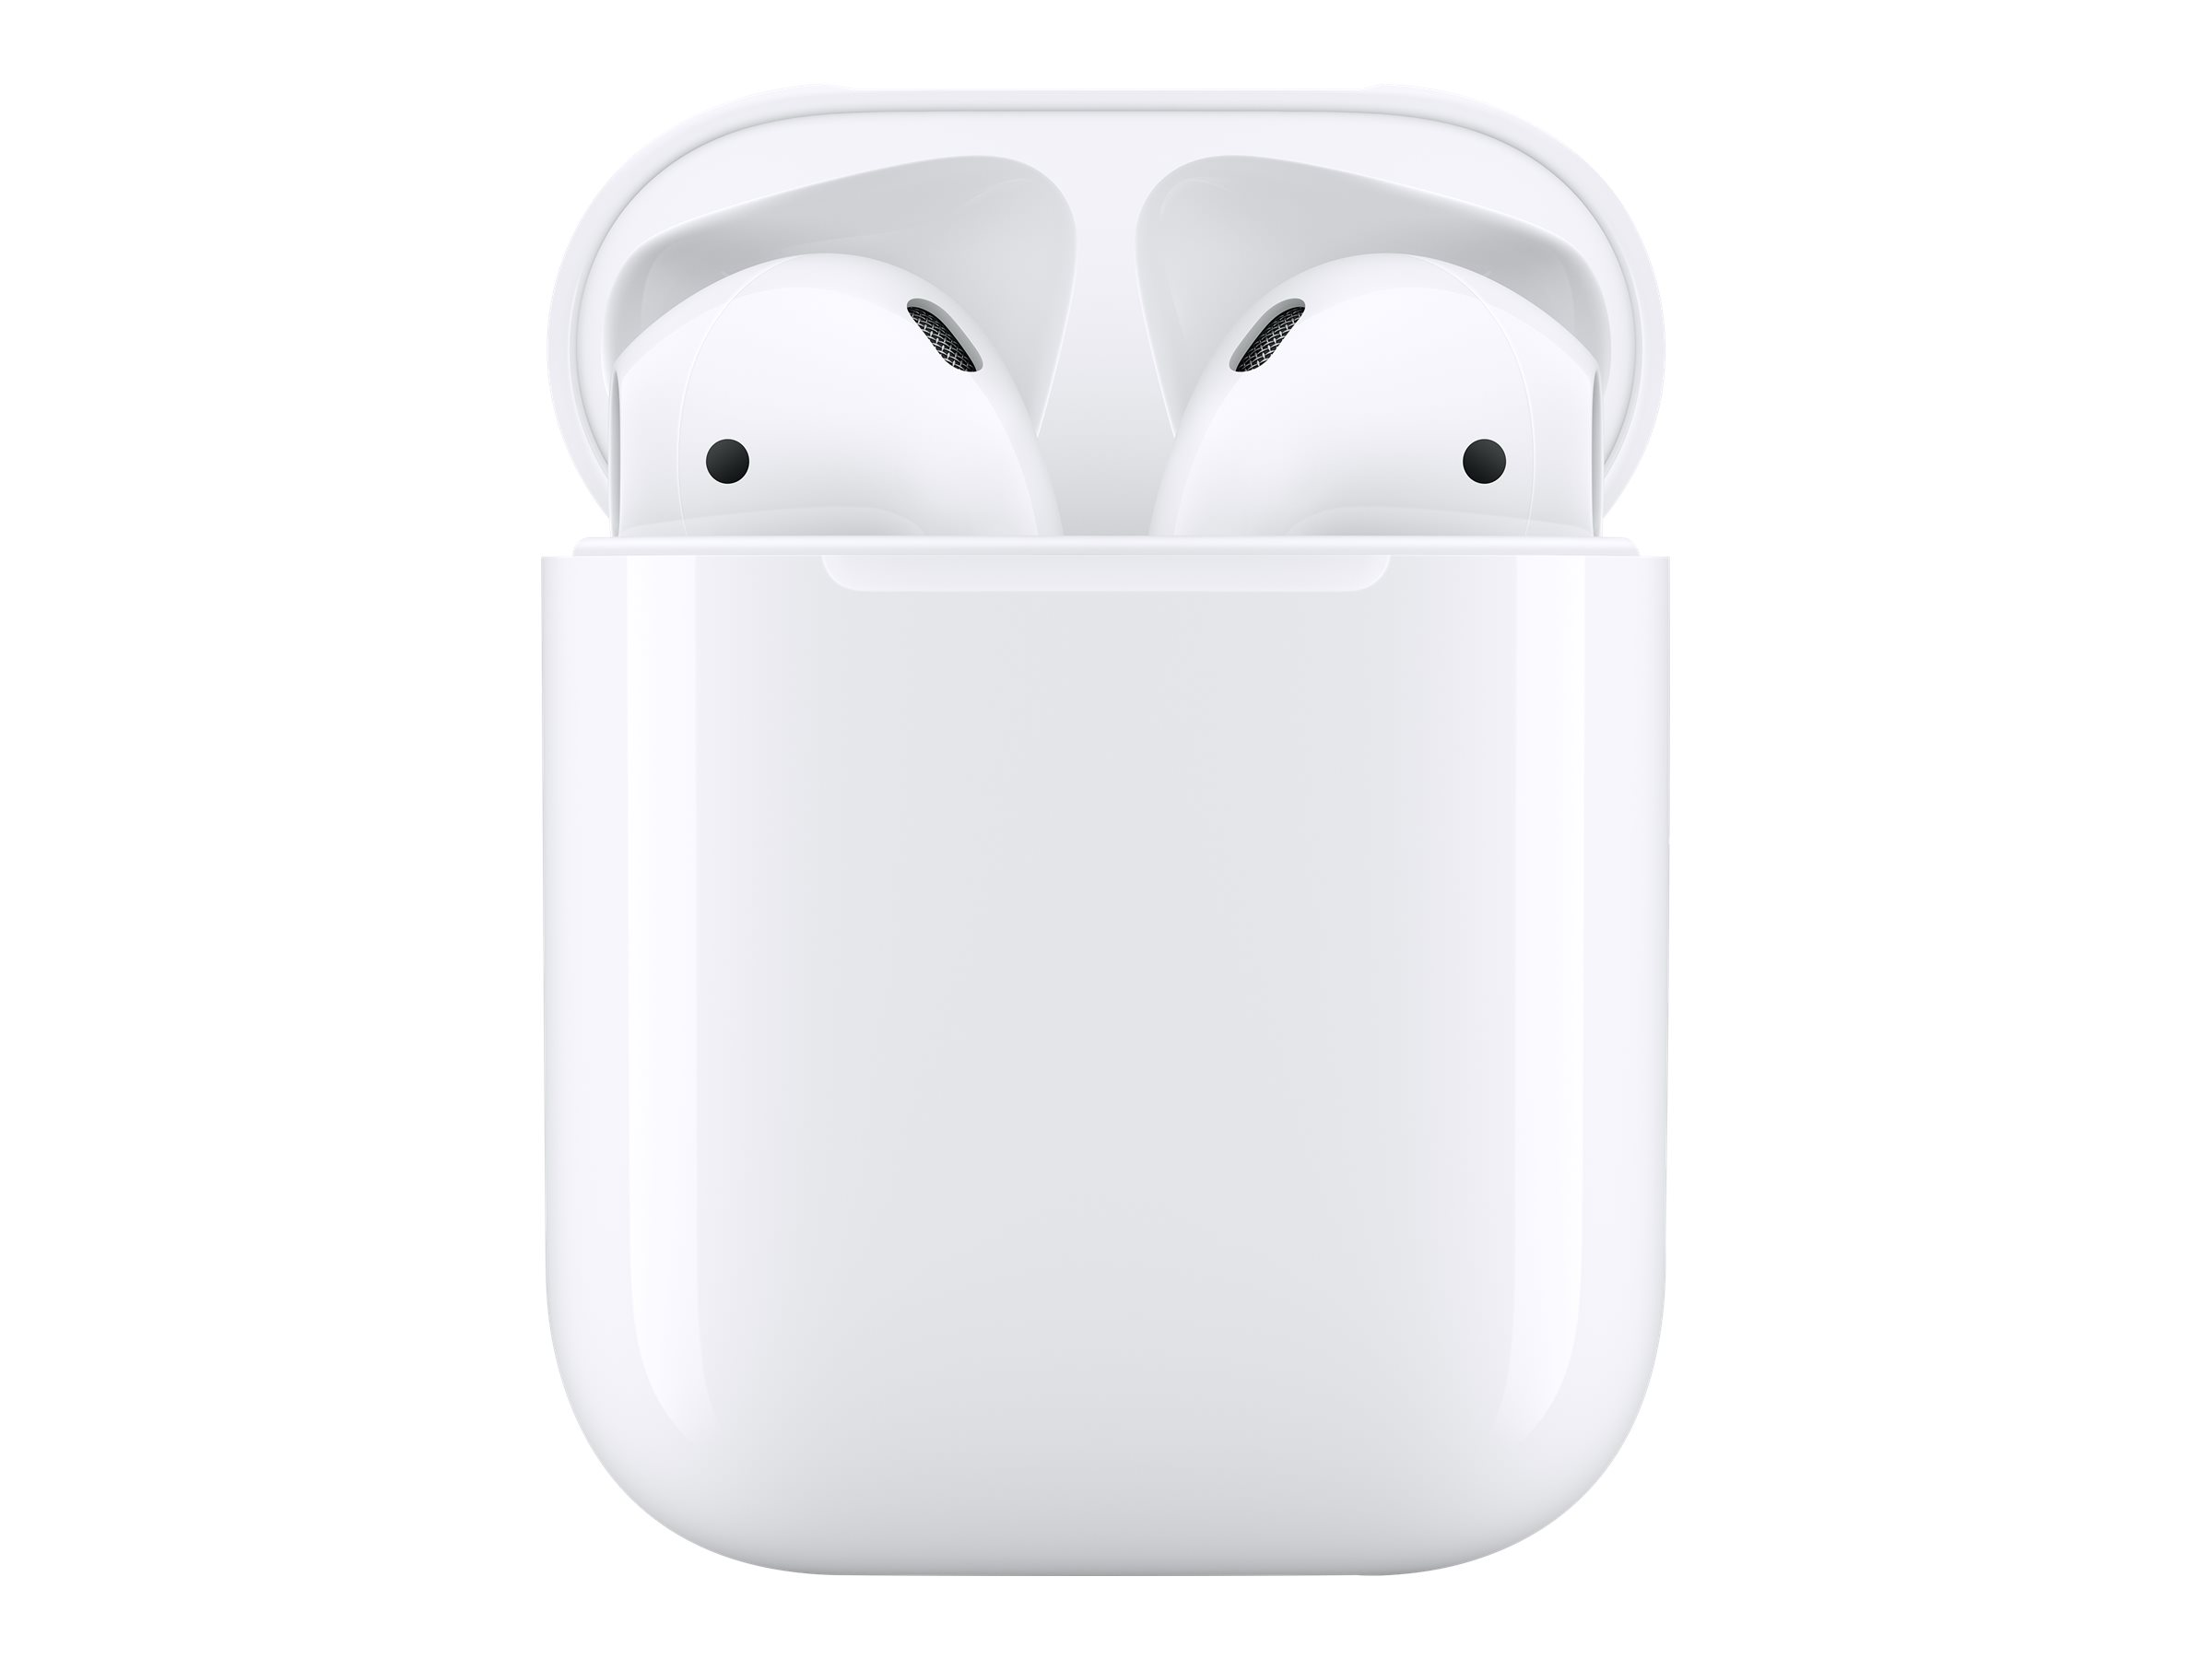 Apple AirPods - 1st Generation - true wireless earphones with mic